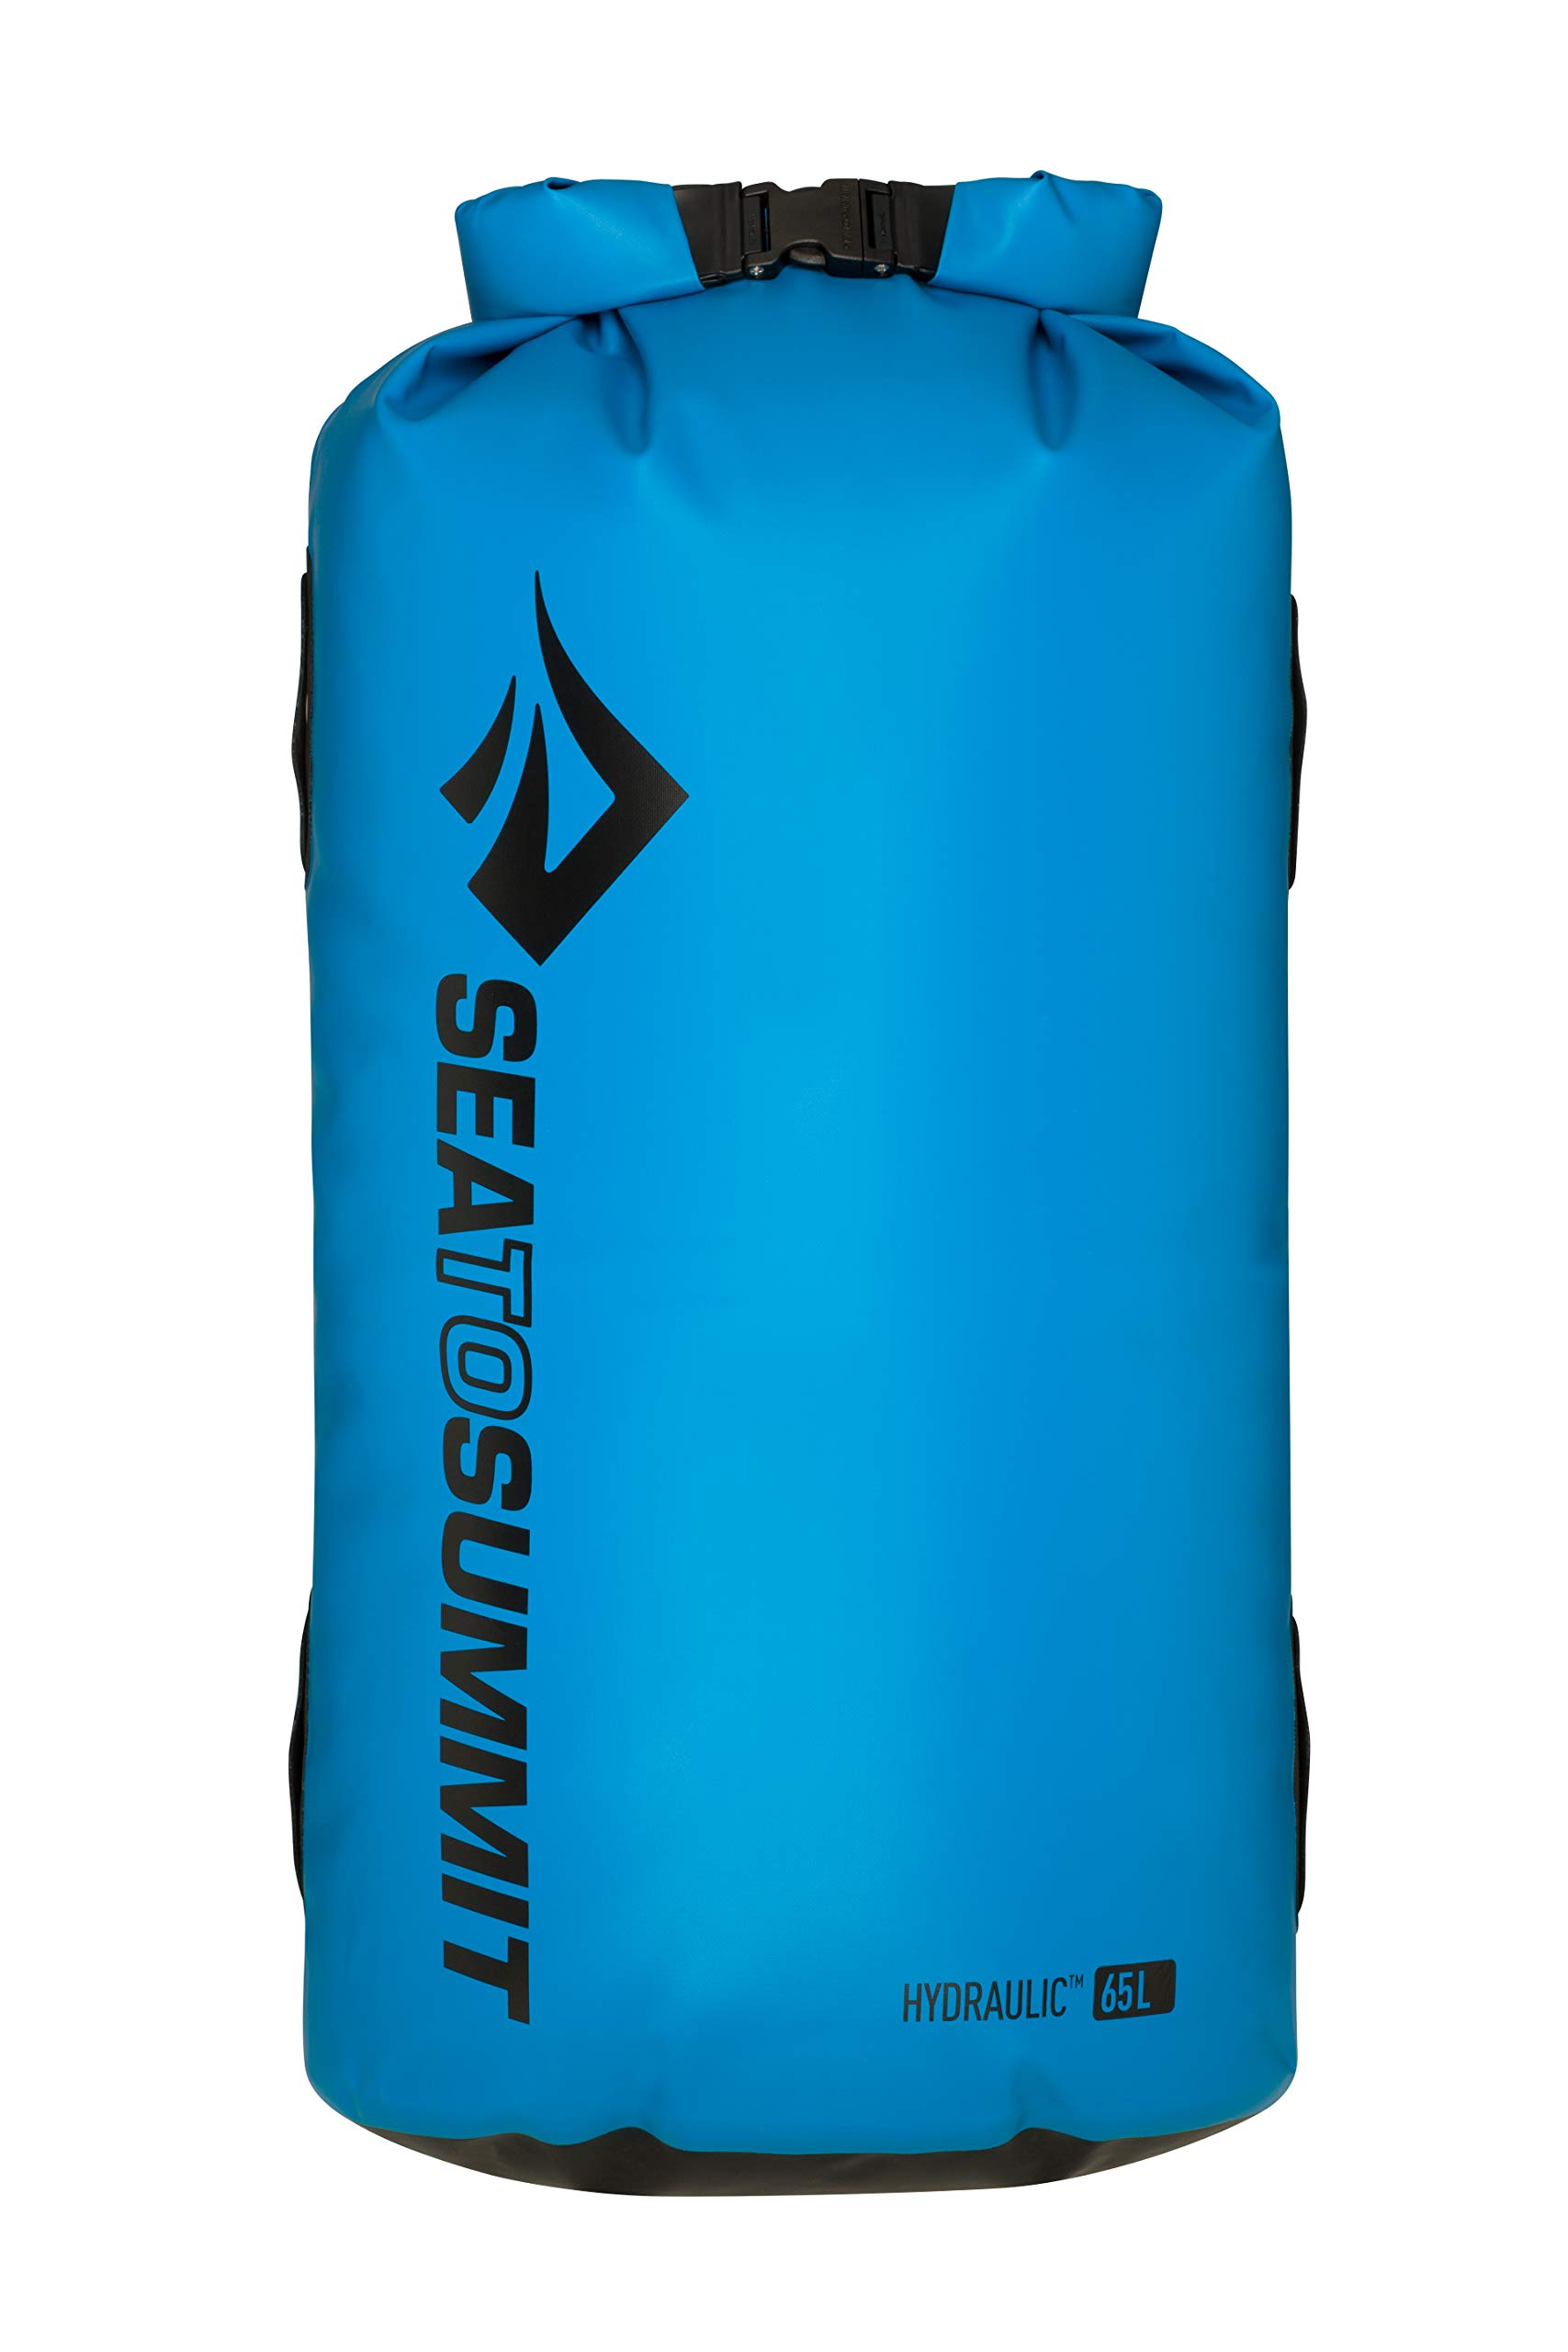 Sea to Summit Hydraulic Dry Bag, Blue, 65 Liter by Sea to Summit